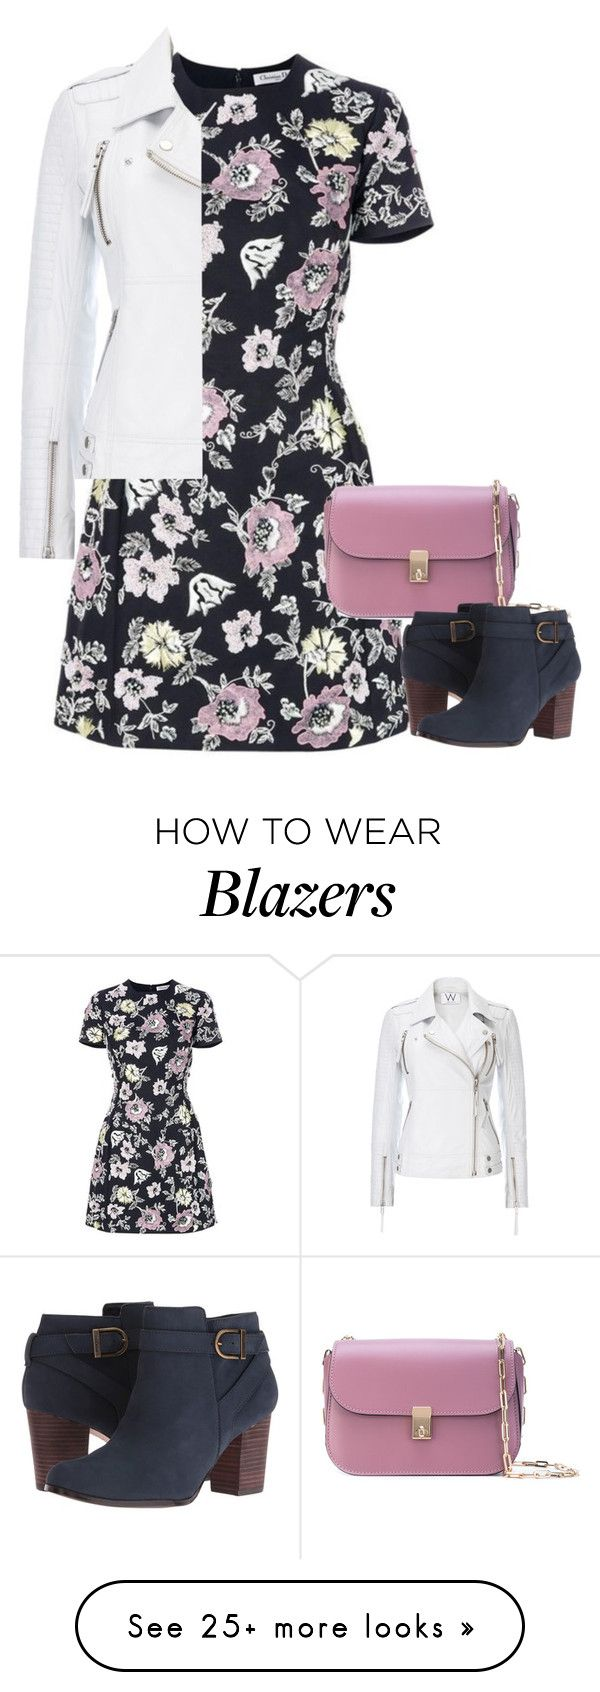 """""""Untitled #1220"""" by mrseclipse on Polyvore featuring Christian Dior, Valentino, Cole Haan and Wallis"""